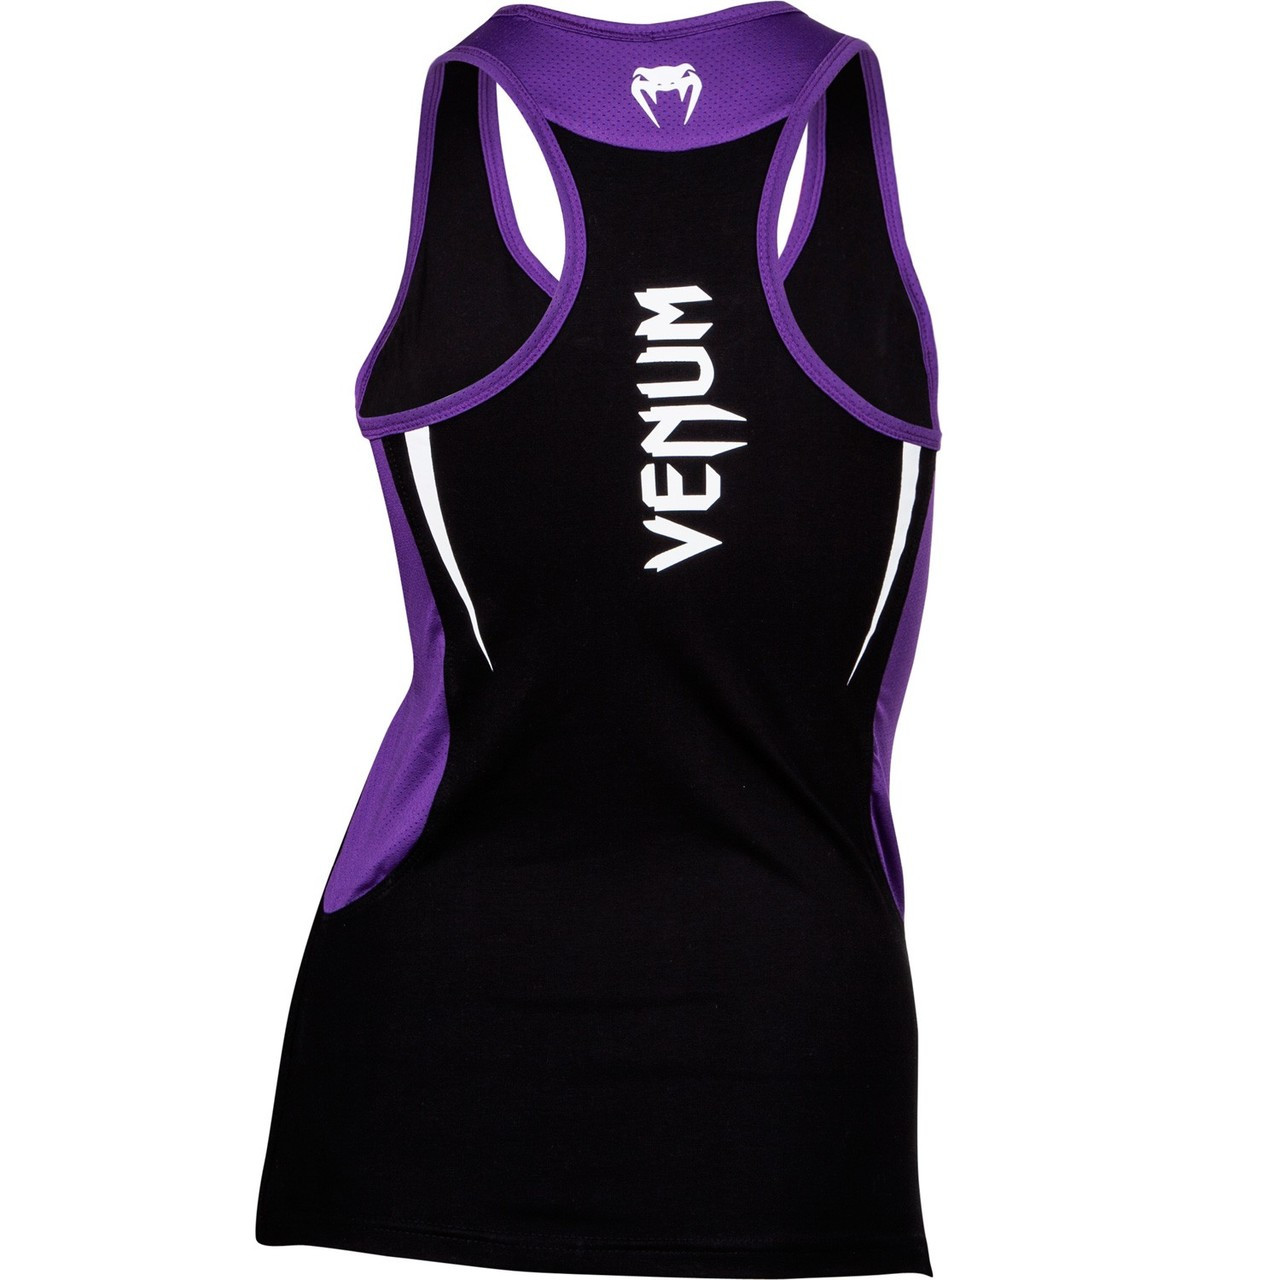 Venum Body Fit Tank Top black with purple accents now available at www.thejiujitsuhsop.com  Enjoy Free Shipping from The Jiu Jitsu Shop